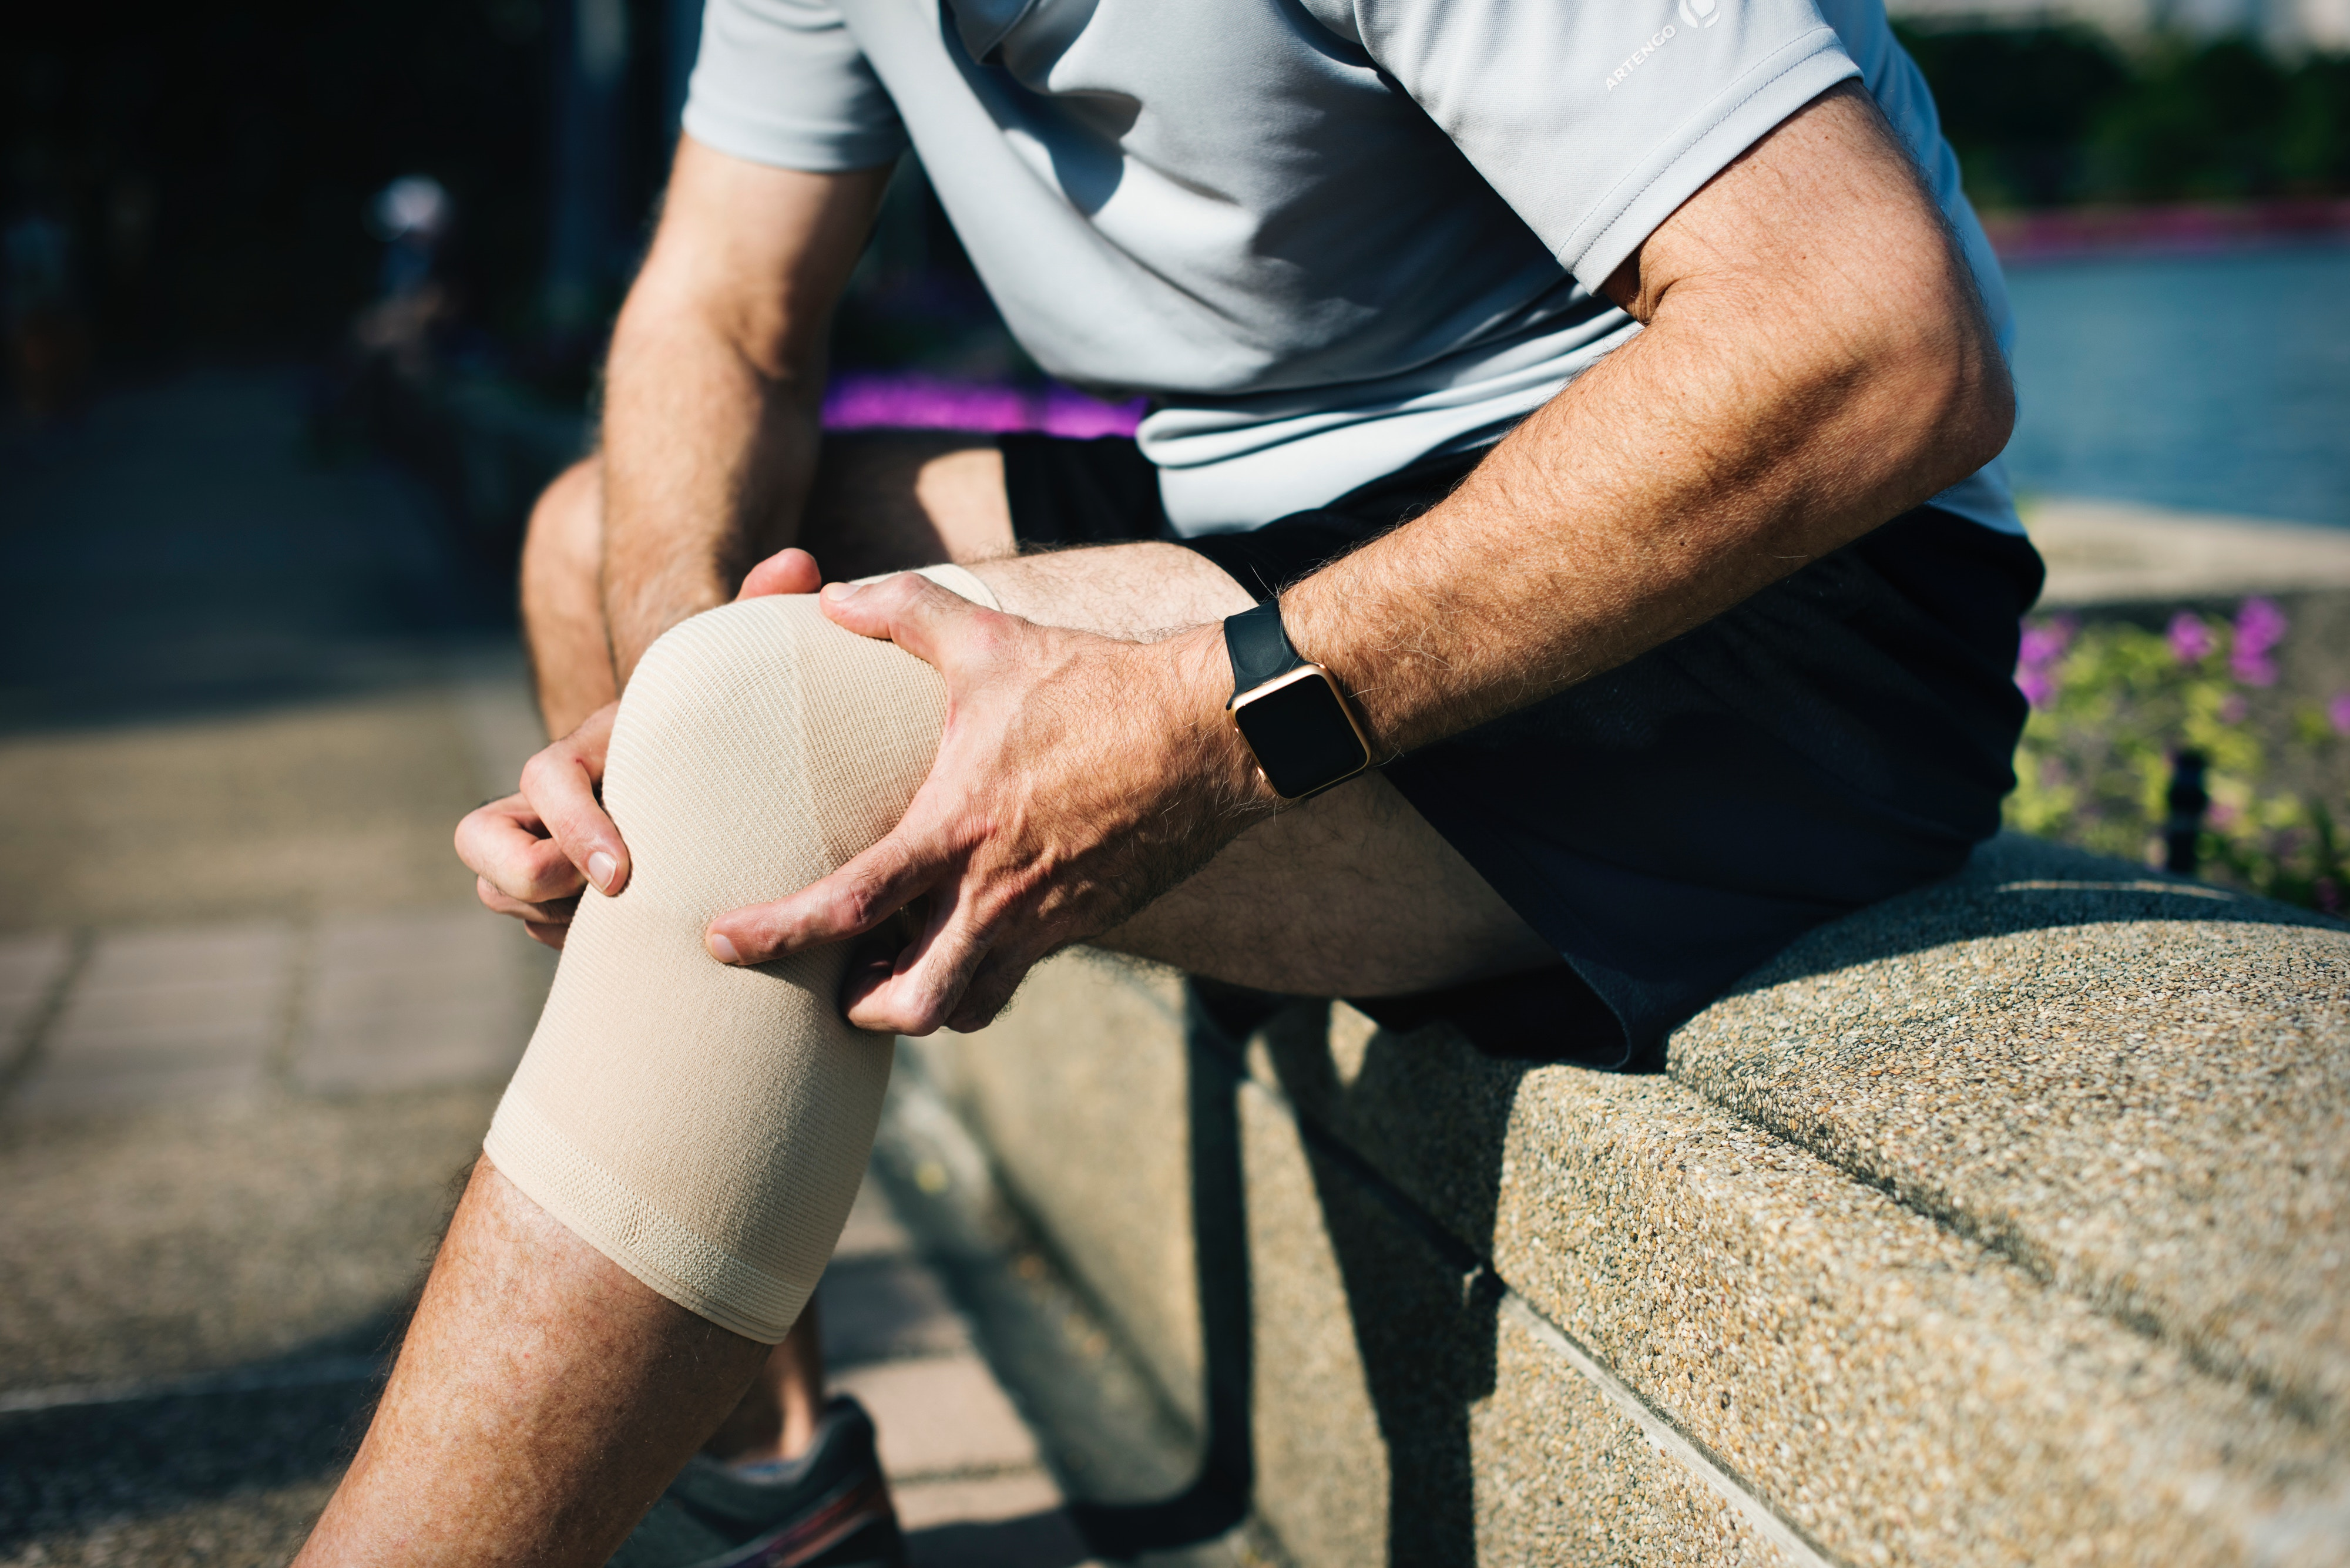 Knee injuries are some the most common injuries for which athletes seek surgery. Yet, there are alternatives to surgery for some knee injuries, such as a torn meniscus. The answer? A new study found that physical therapy is just as good if not better than surgery.